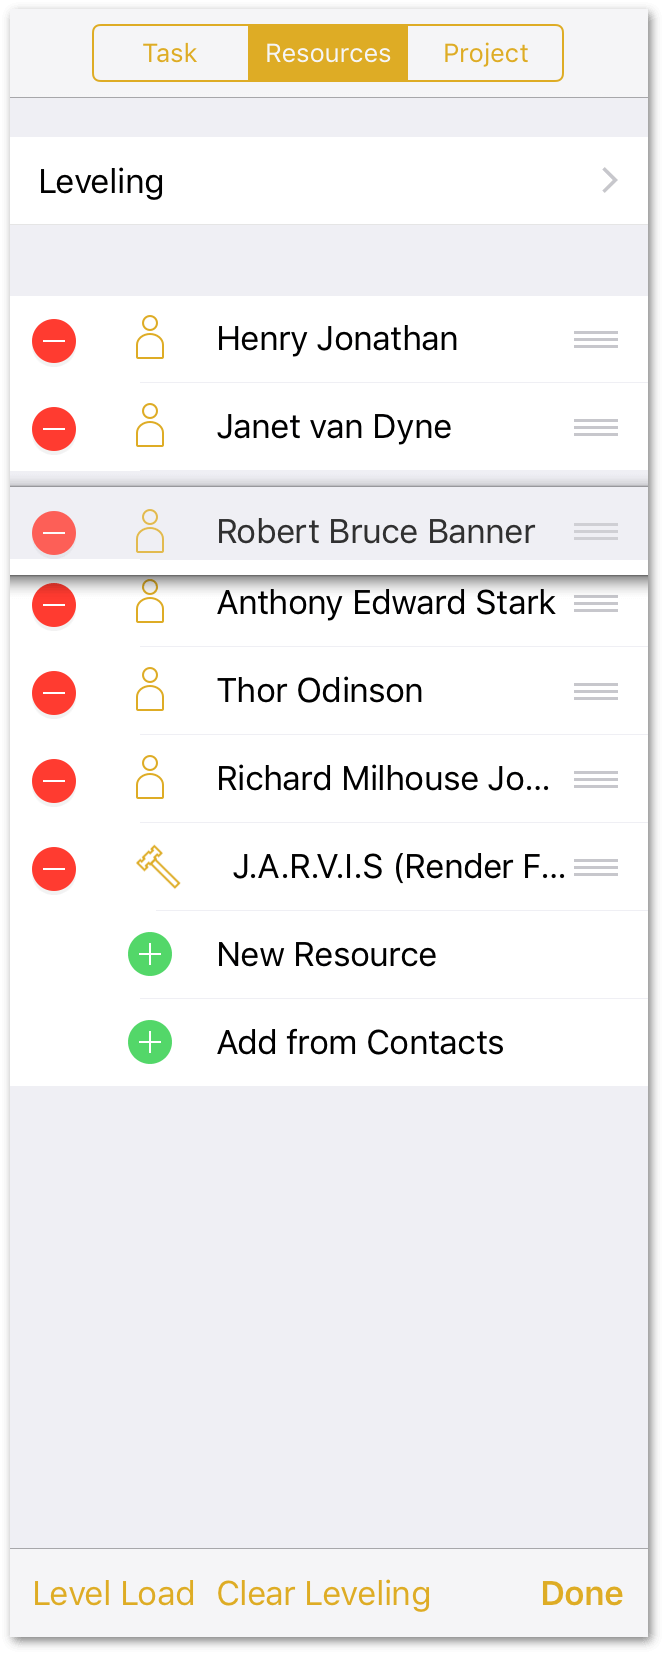 After tapping the Edit button, use the handles on the right edge of each resource to move them around in the list, or tap the delete button to remove a resource.